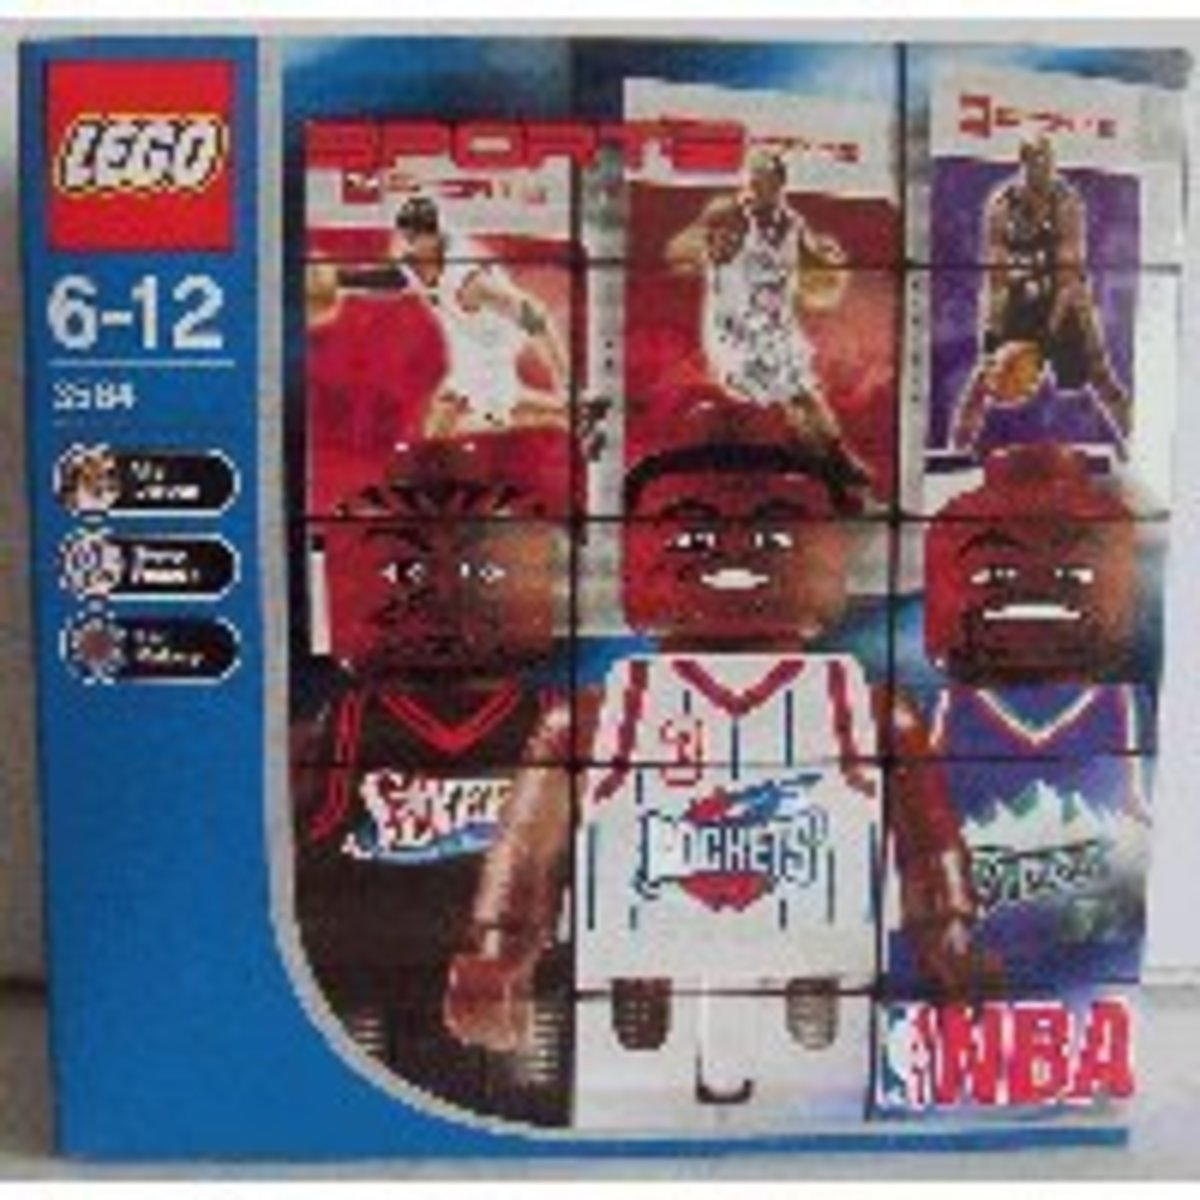 Lego NBA Collectors Set #5 in its box